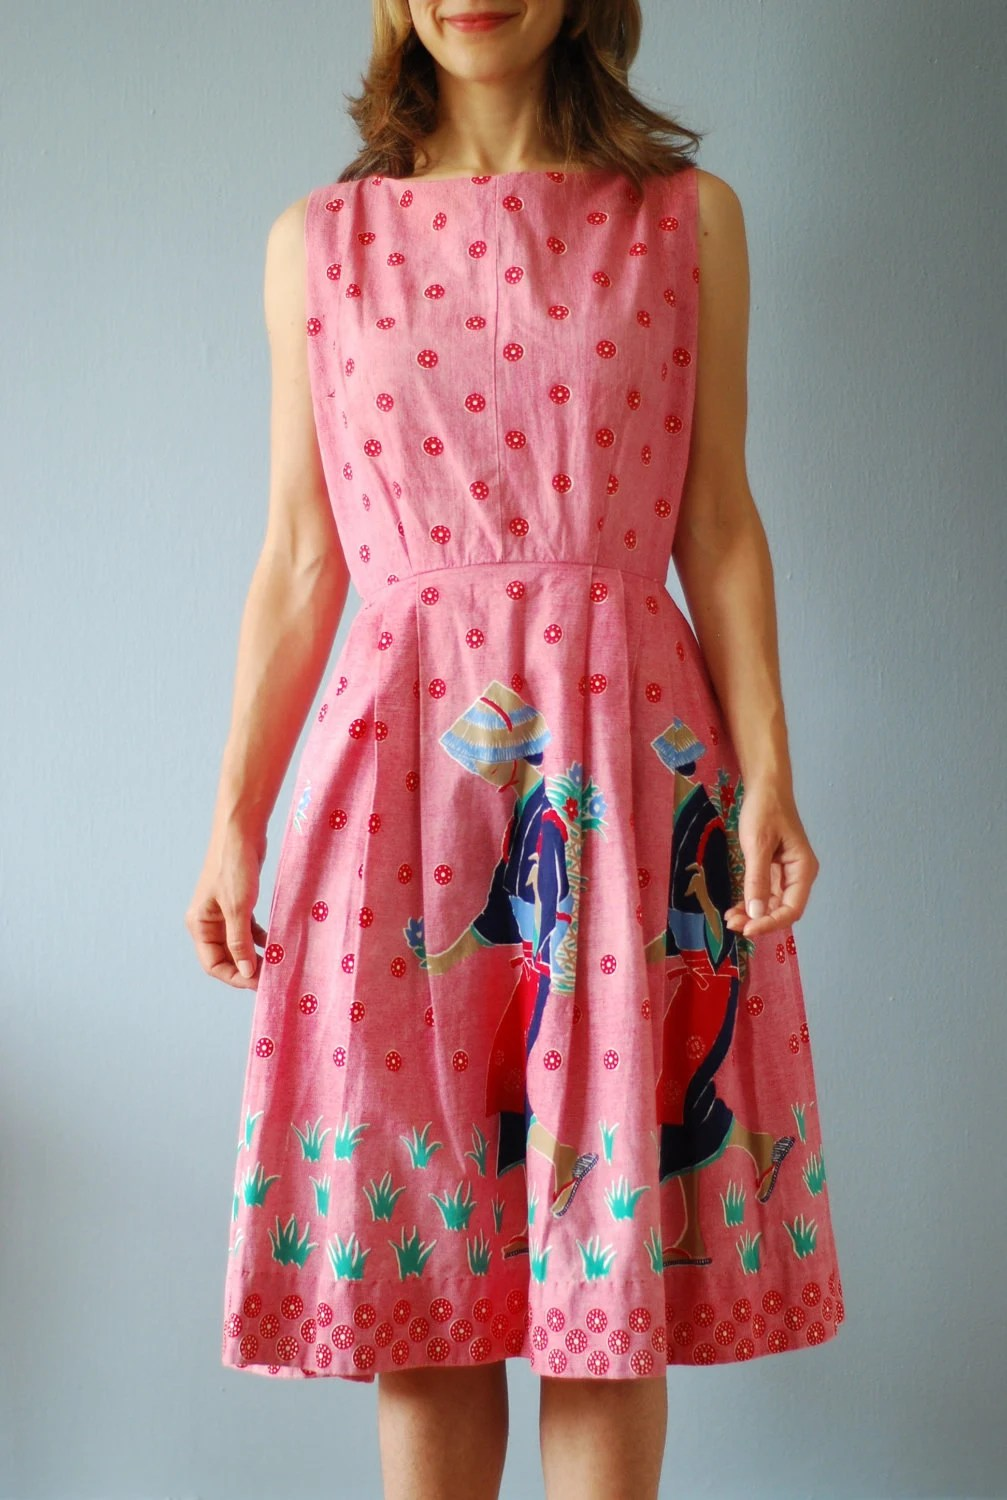 1950's Summer Dress with Japanese Woman Screen Print